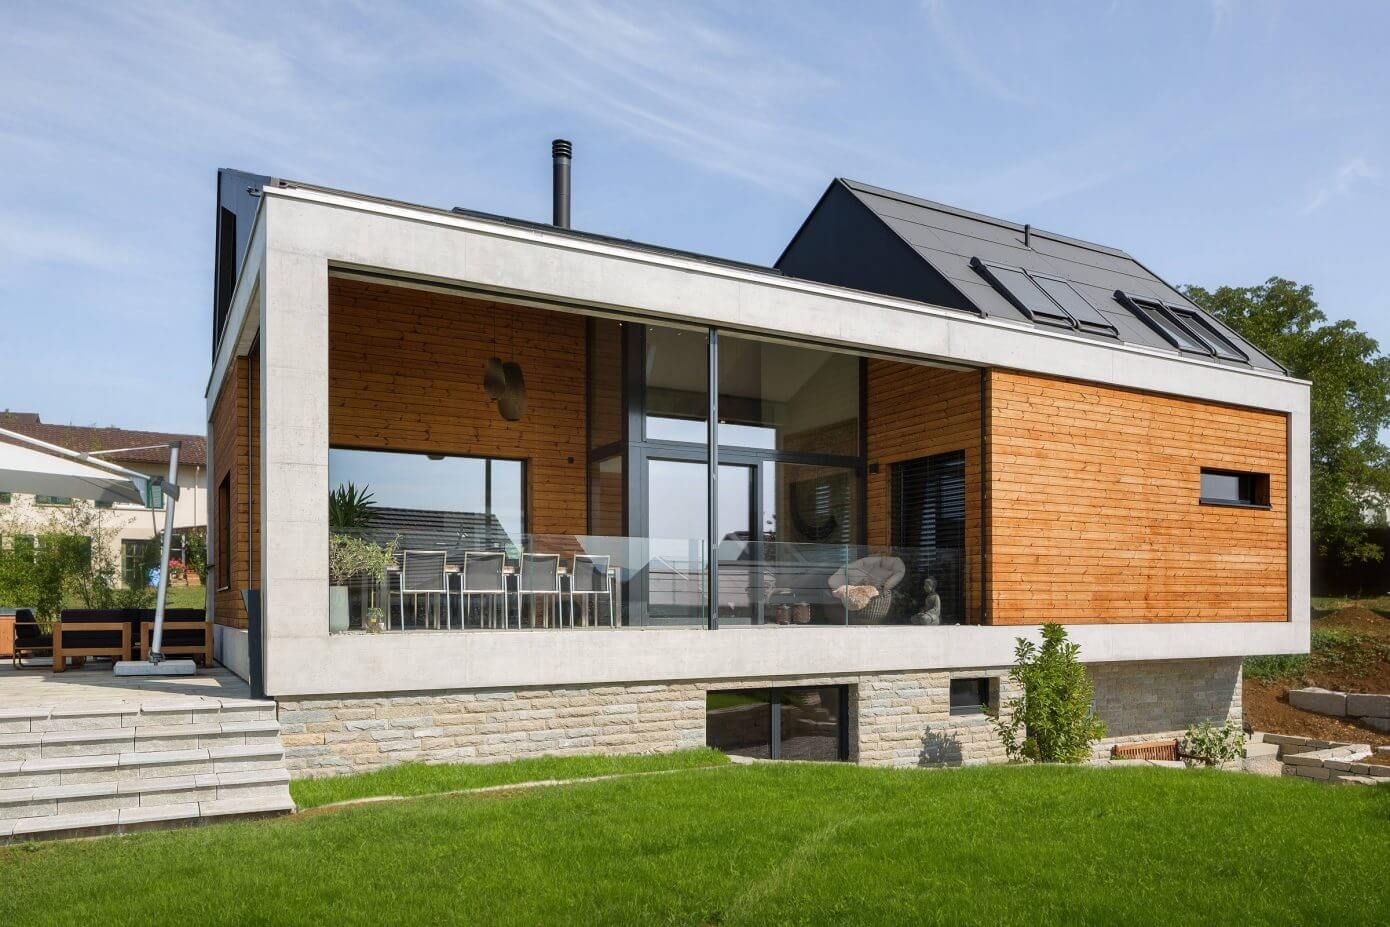 249 best Minimalist Ideas \u0026 Contemporary House design images on ...